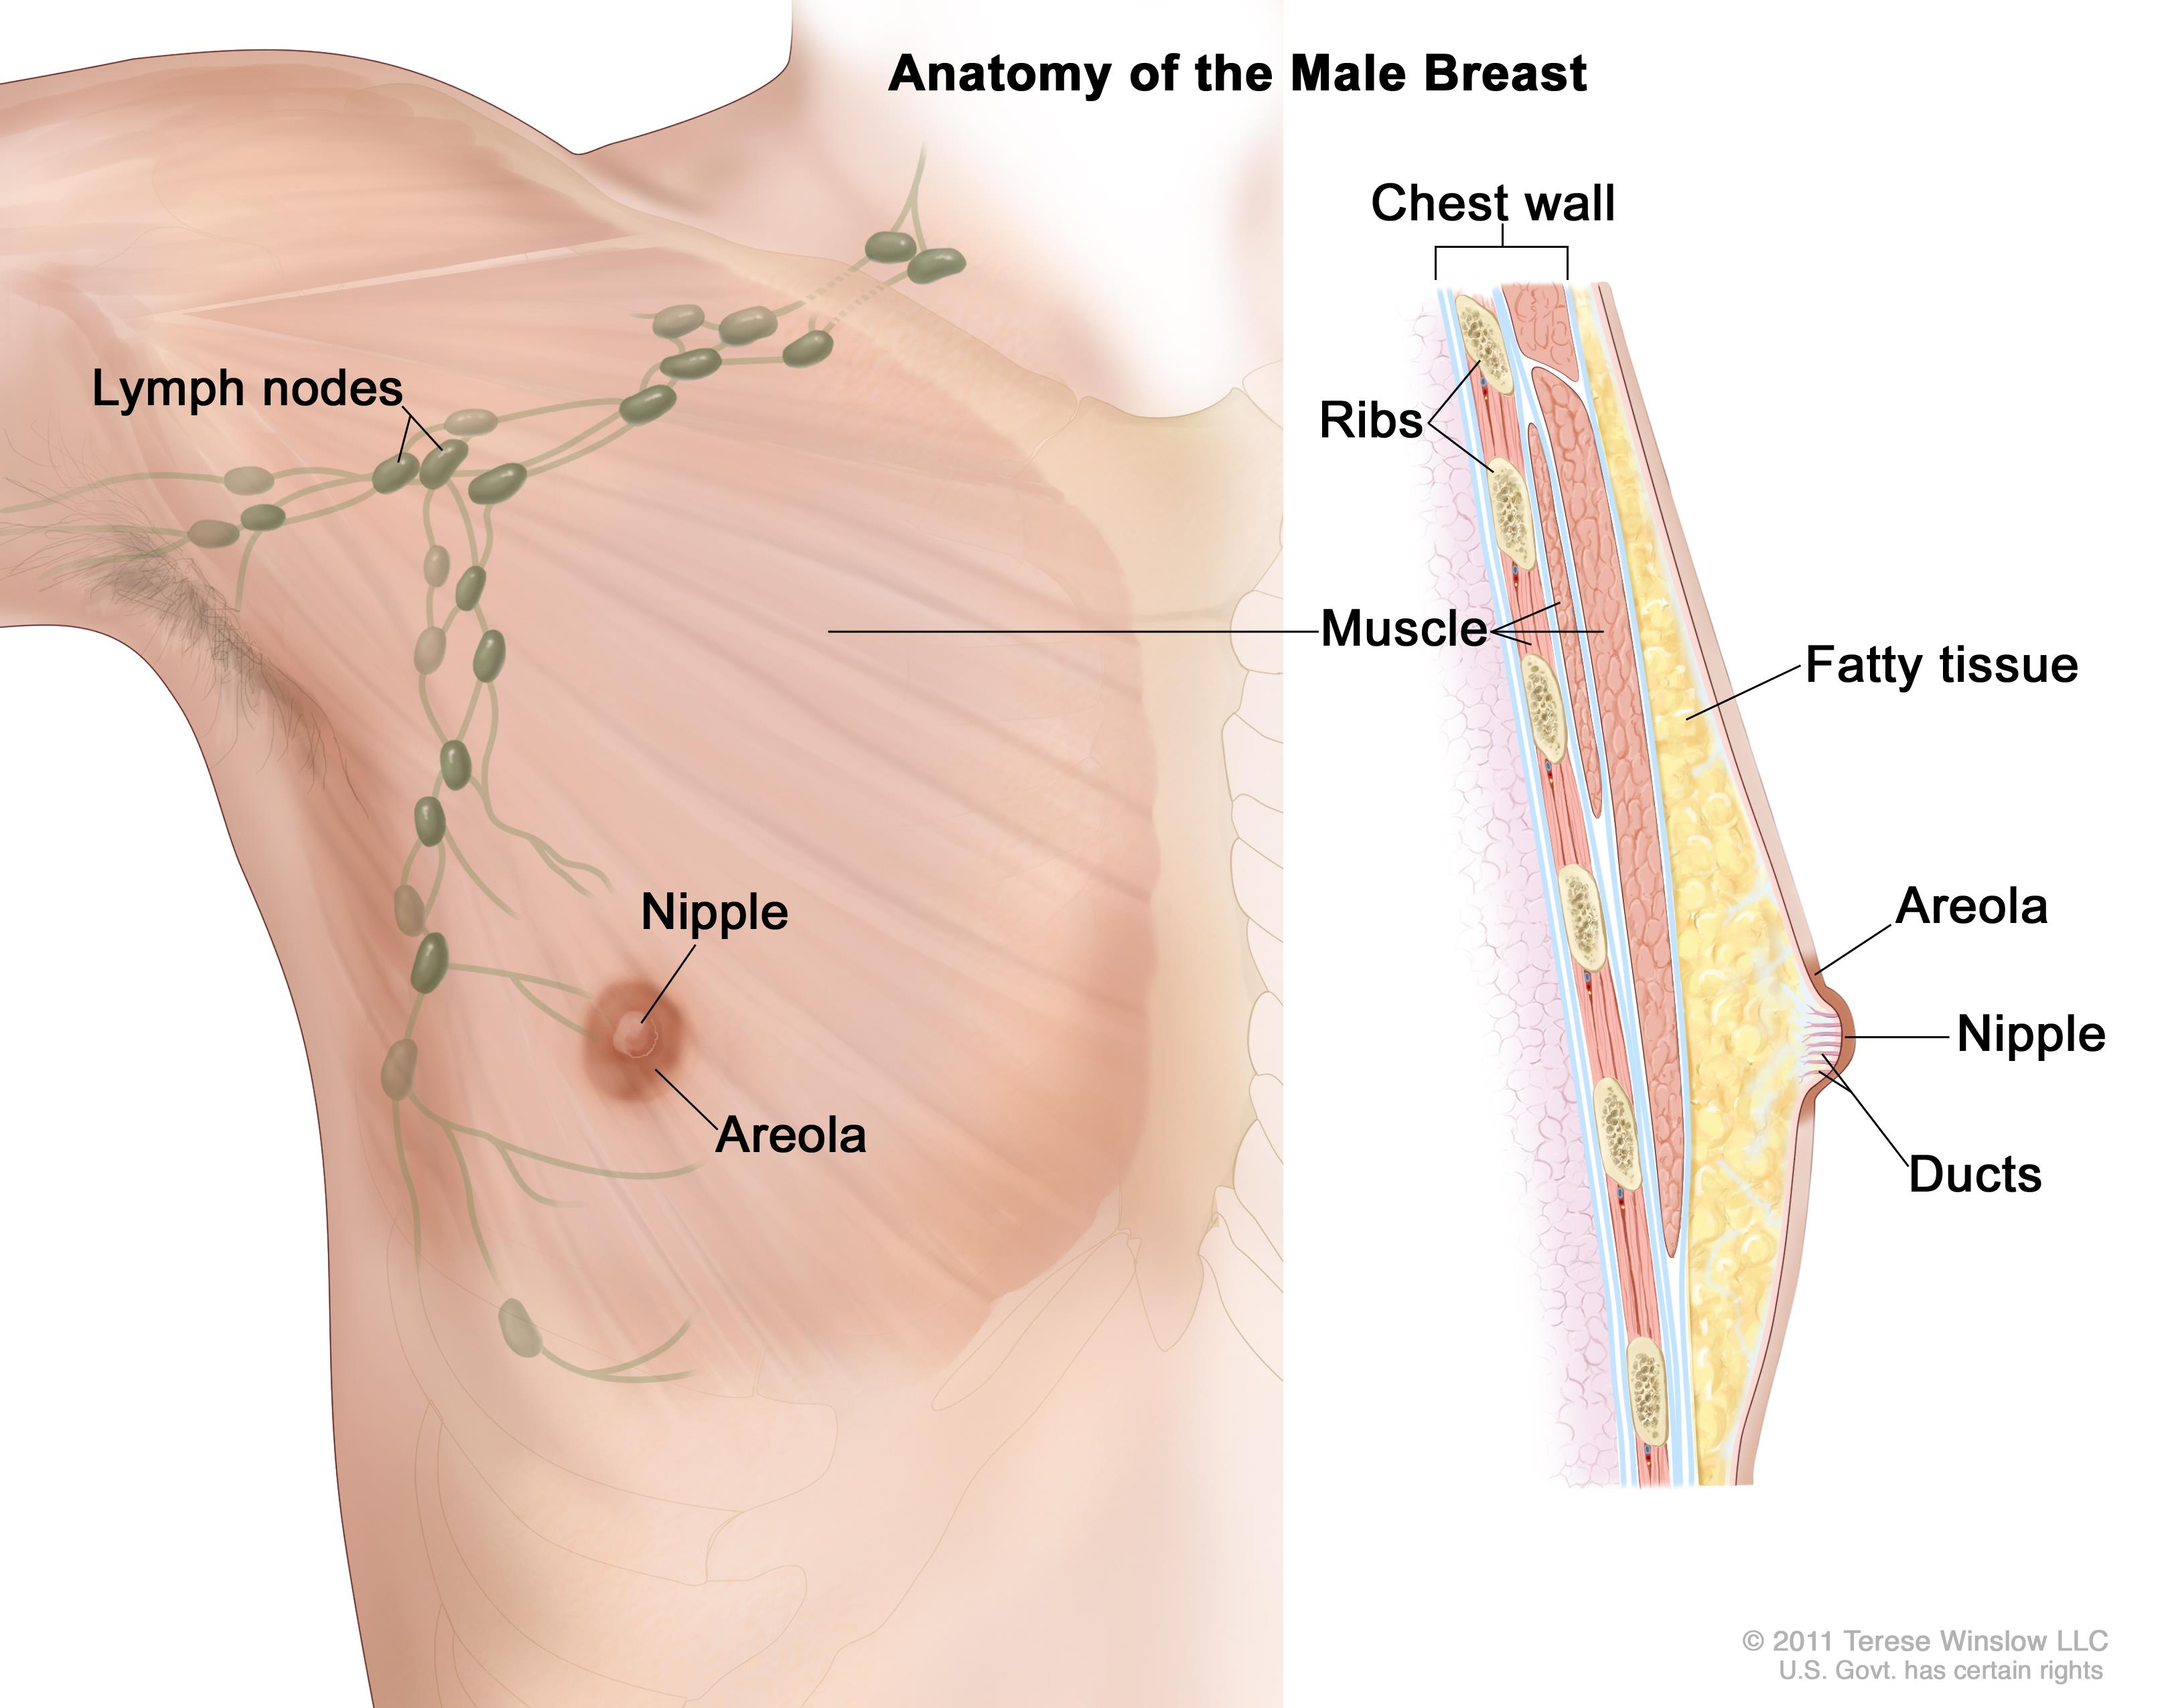 The disease breast cancer